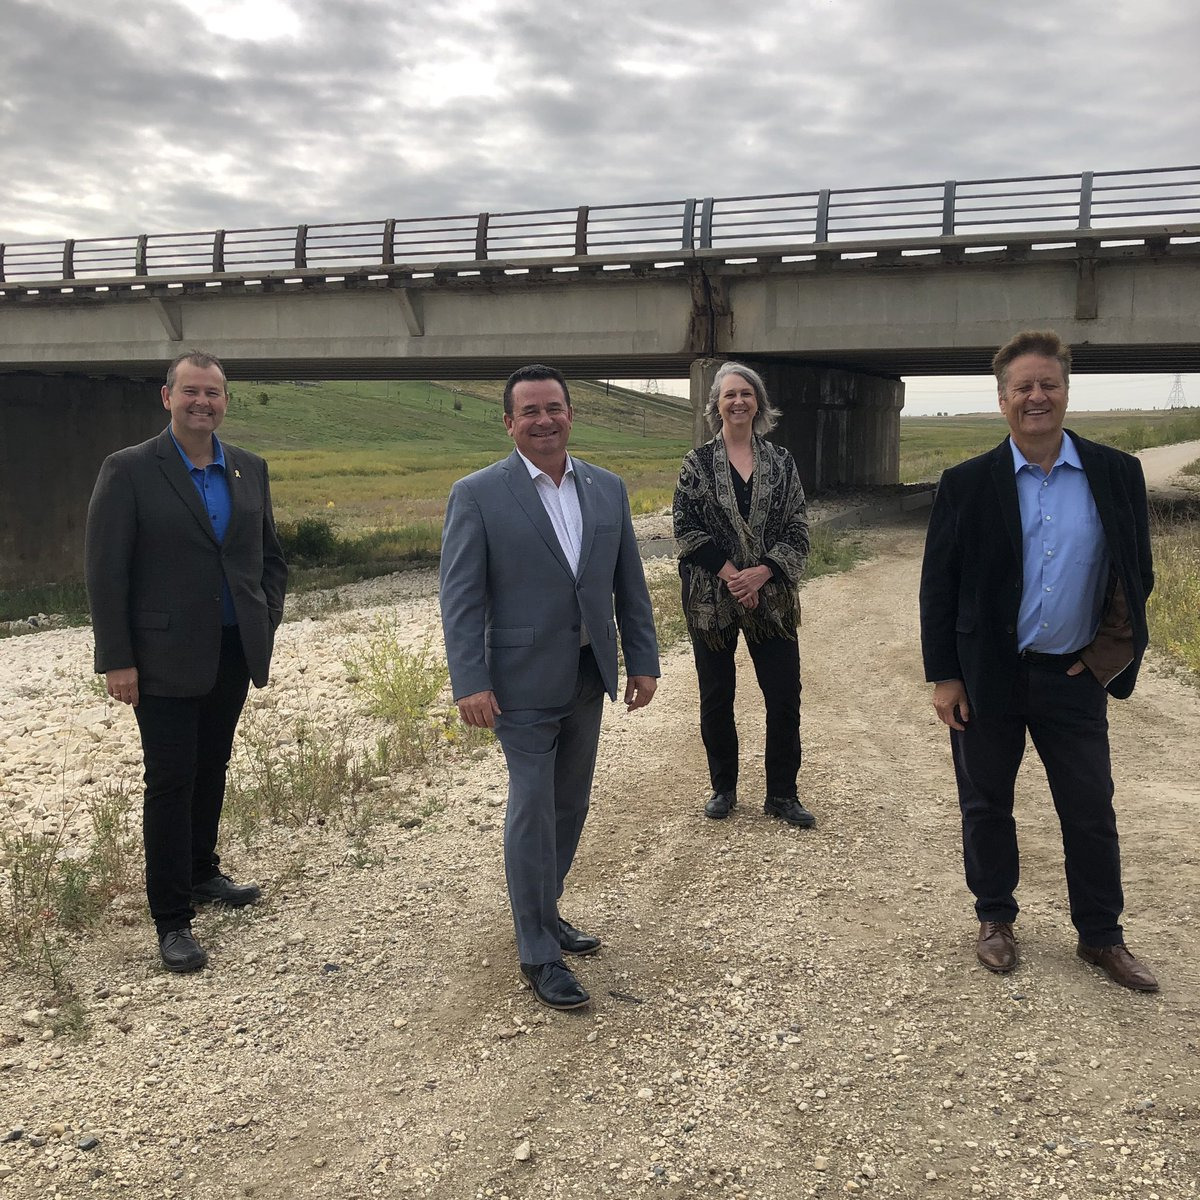 test Twitter Media - Great to be joined by my colleagues Minister Ron Schuler, MLA Wayne Ewasko, and Mayor Shelley Hart in East St. Paul this morning for a great announcement. Our governments' priority is safety and that's why we are moving forward with plans for the reconstruction of PTH 59 bridge. https://t.co/ue2bZaPR7j